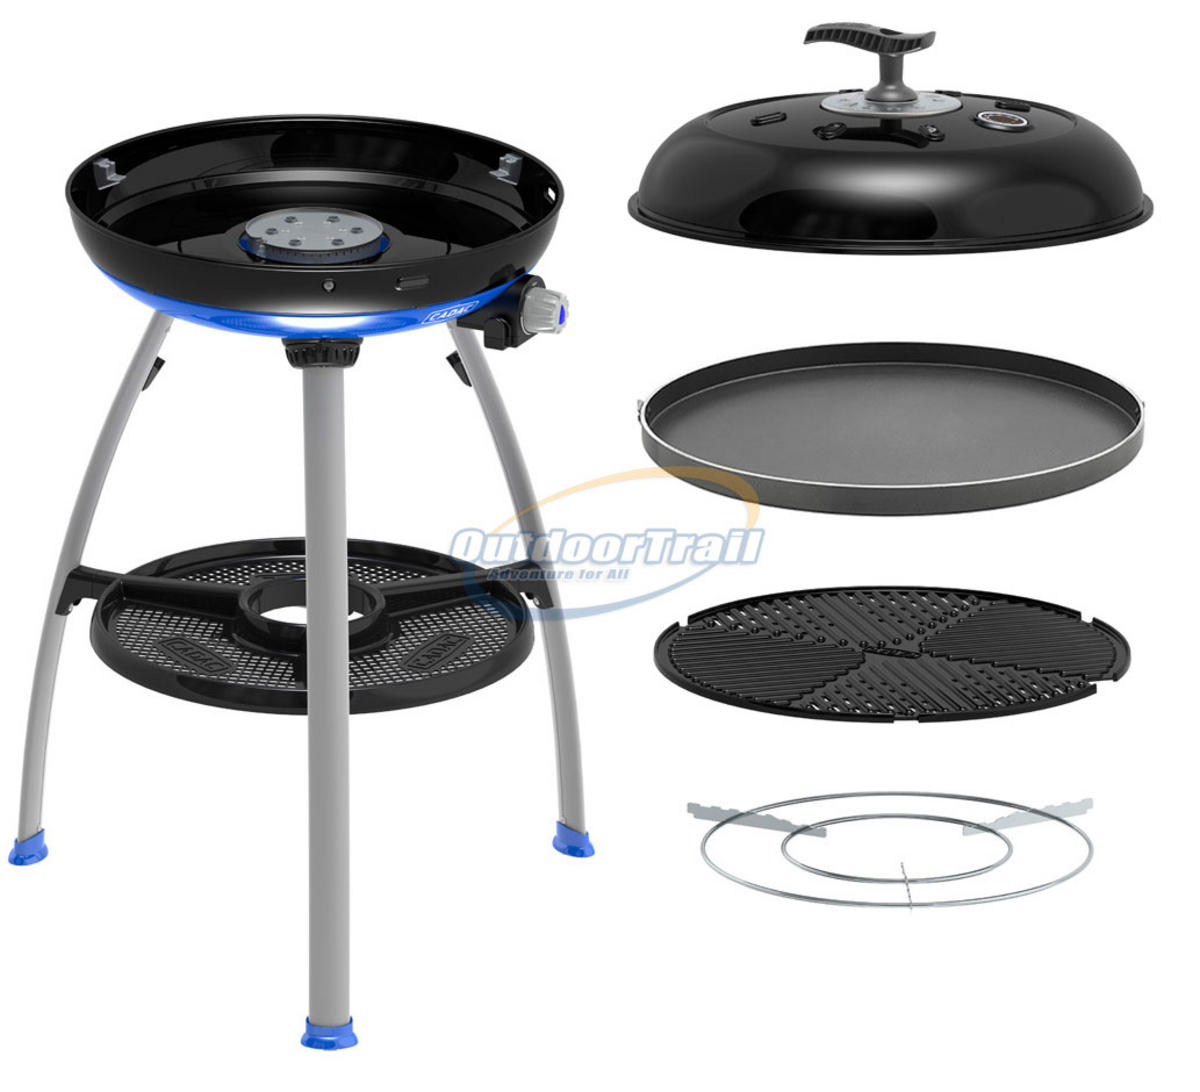 Cadac Carri Chef 2 Deluxe Chef Pan Combo Preview